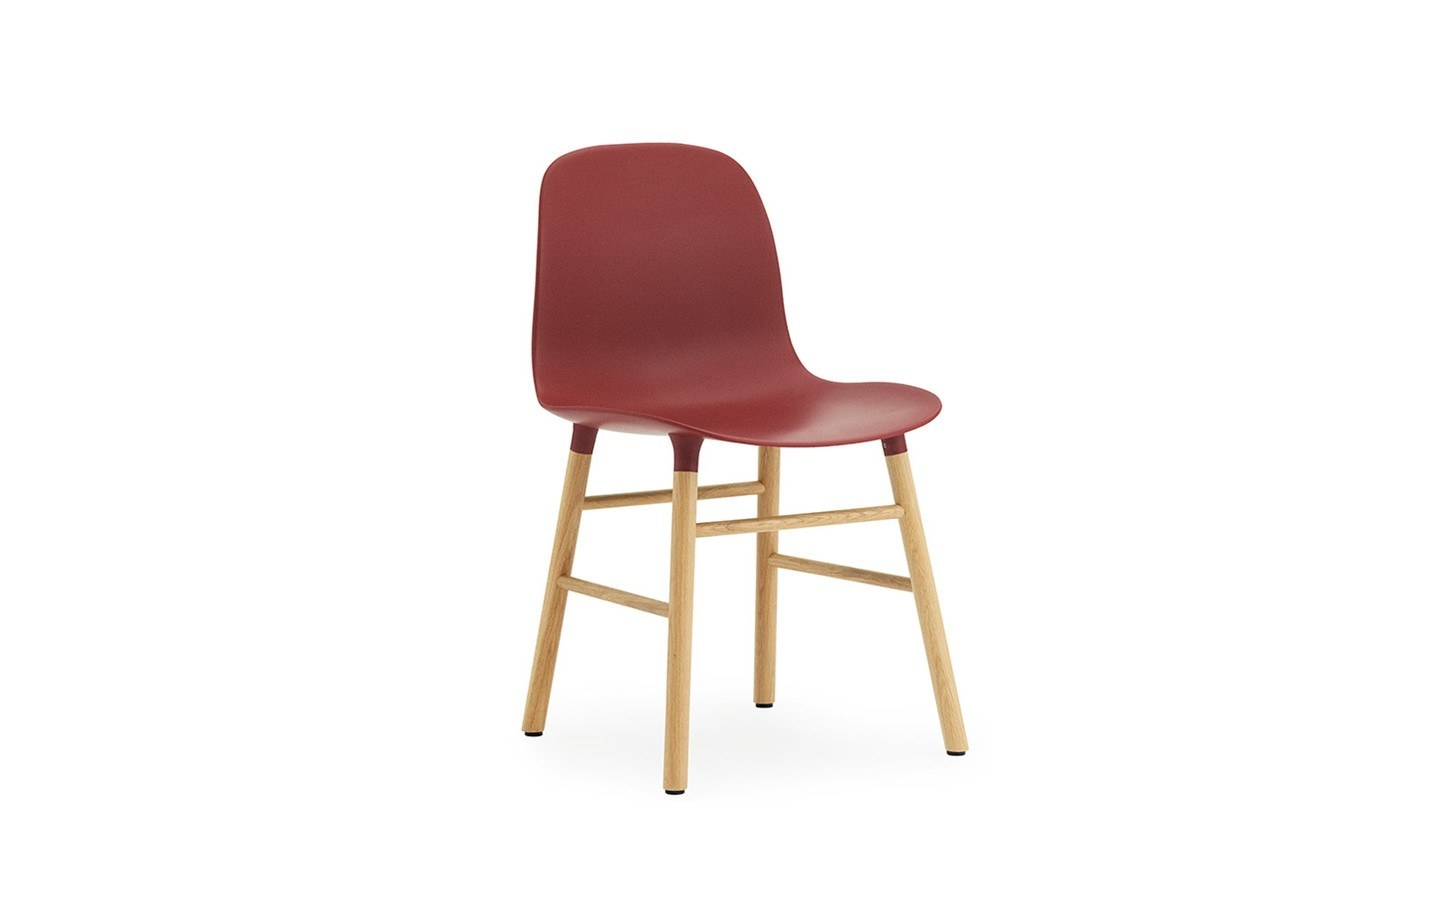 NORMANN COPENHAGEN FORM CHAIR-STEEL BASE - Eclectic Cool  - 6